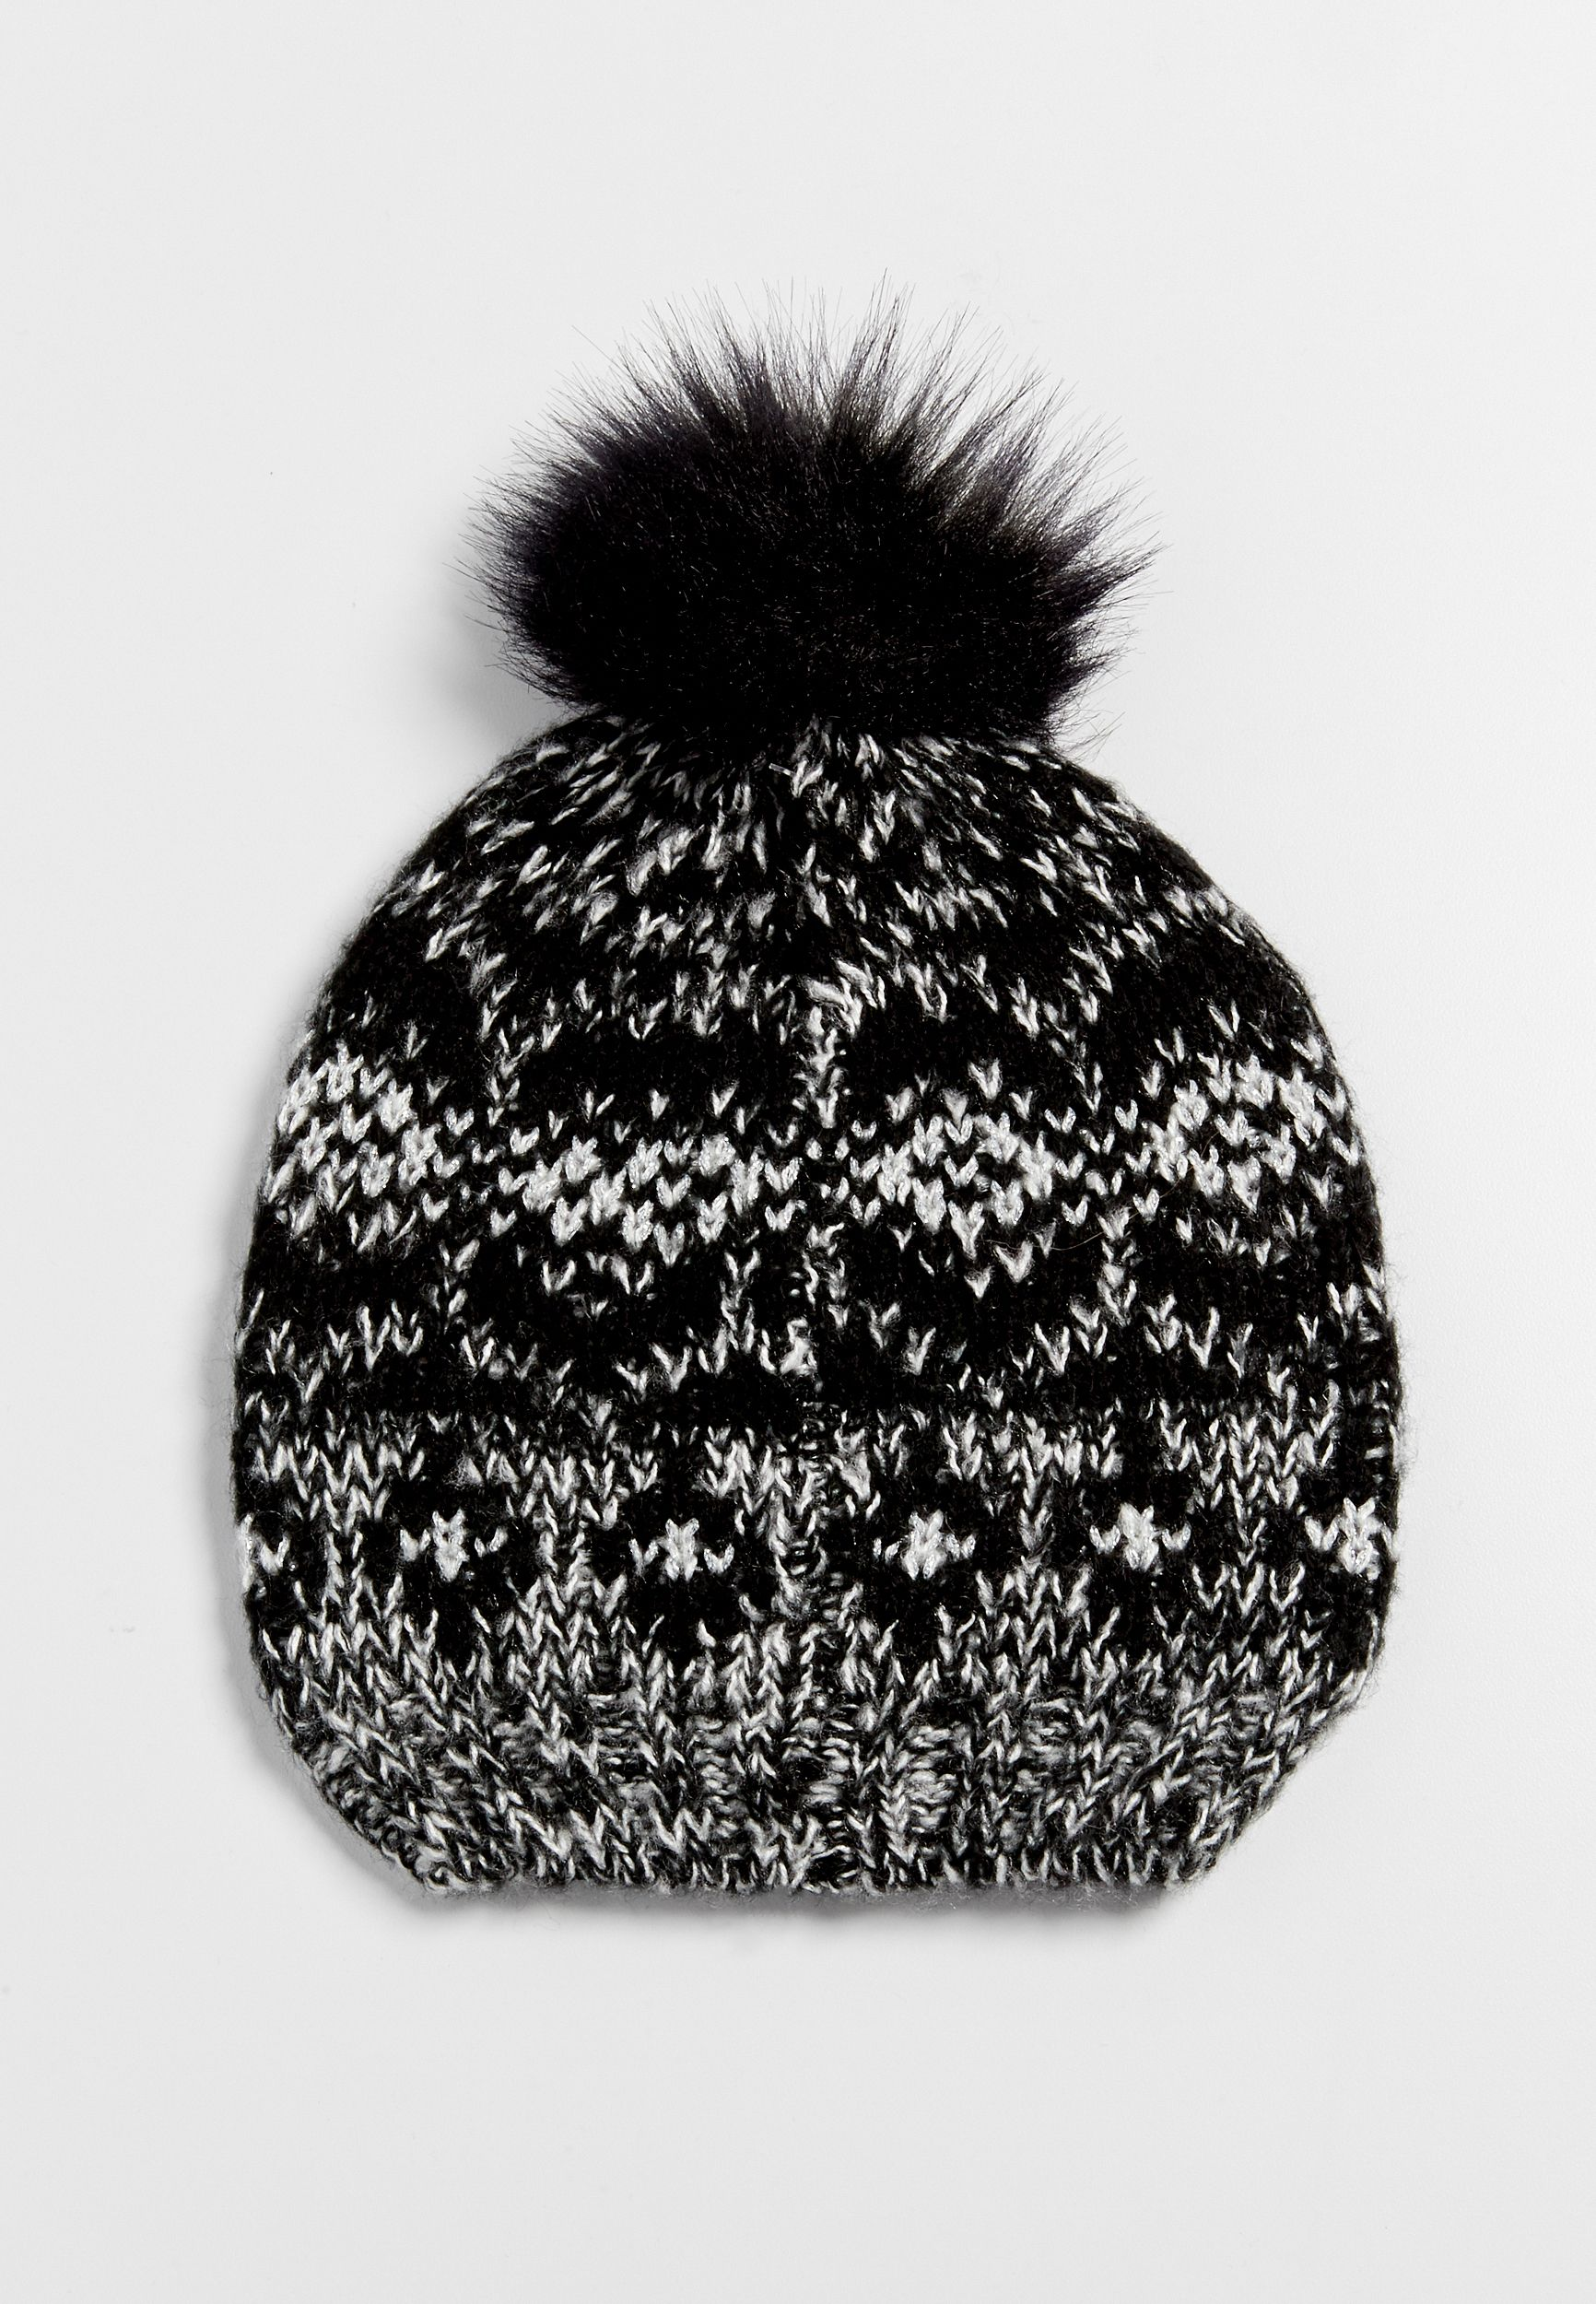 d7f2ea6ba81 patterned knit hat with faux fur pompom and metallic stitching (original  price